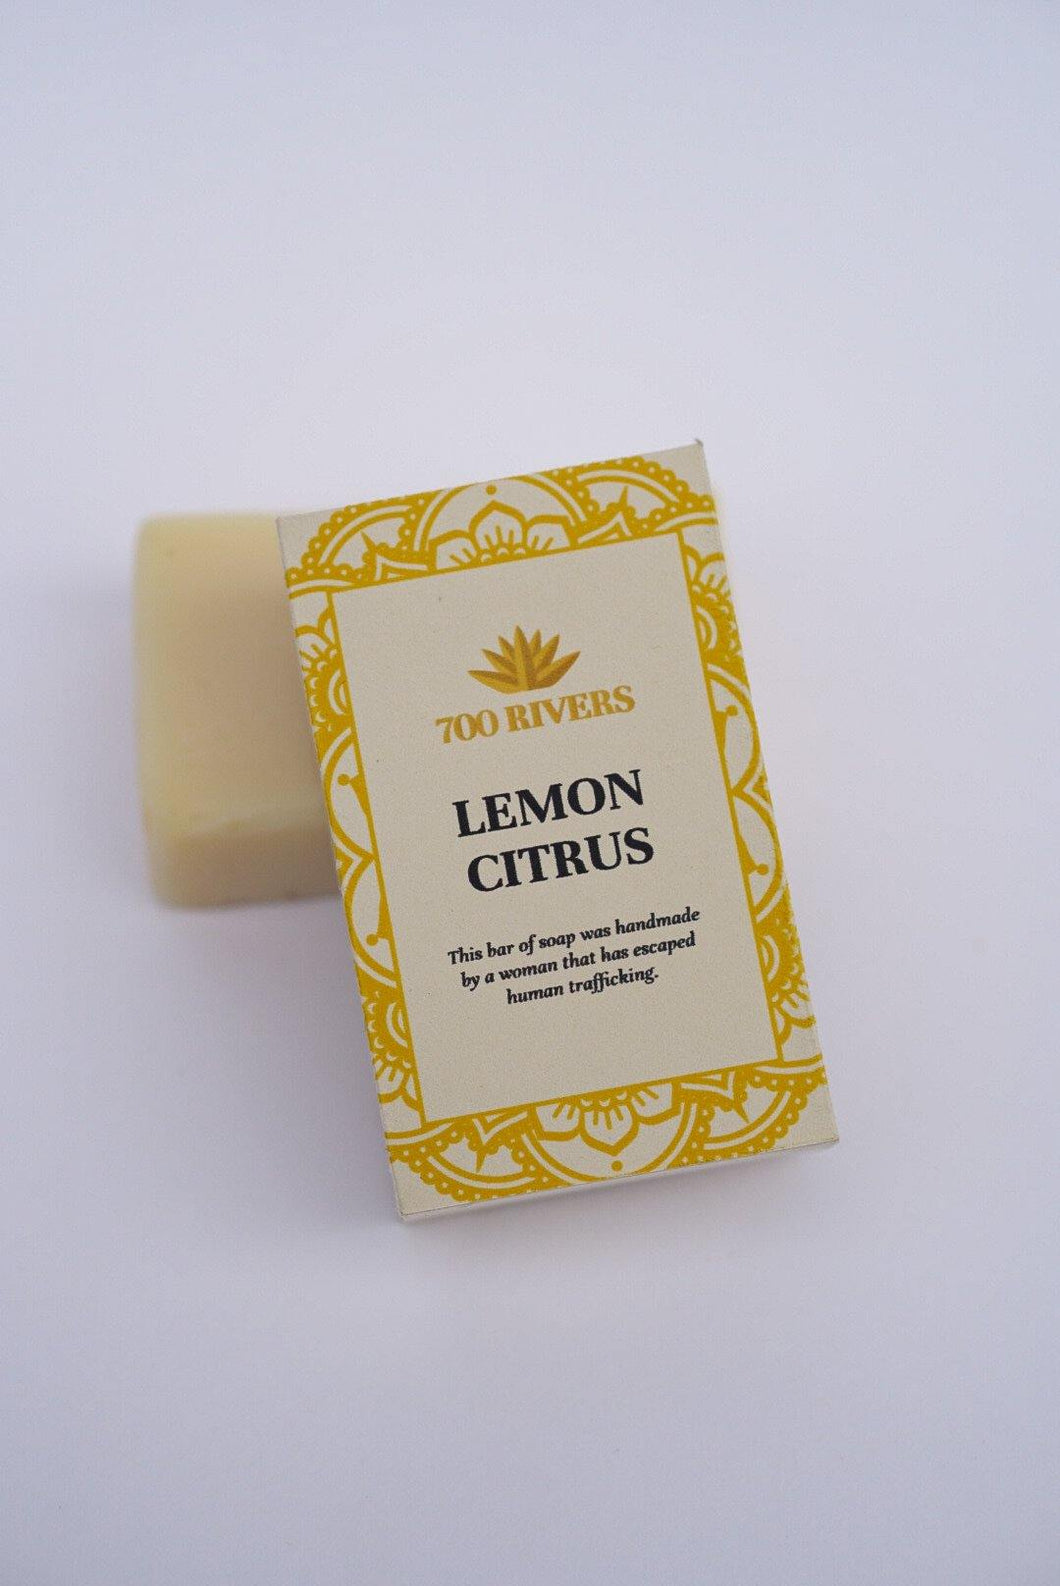 700 Rivers Soap, Lemon Citrus